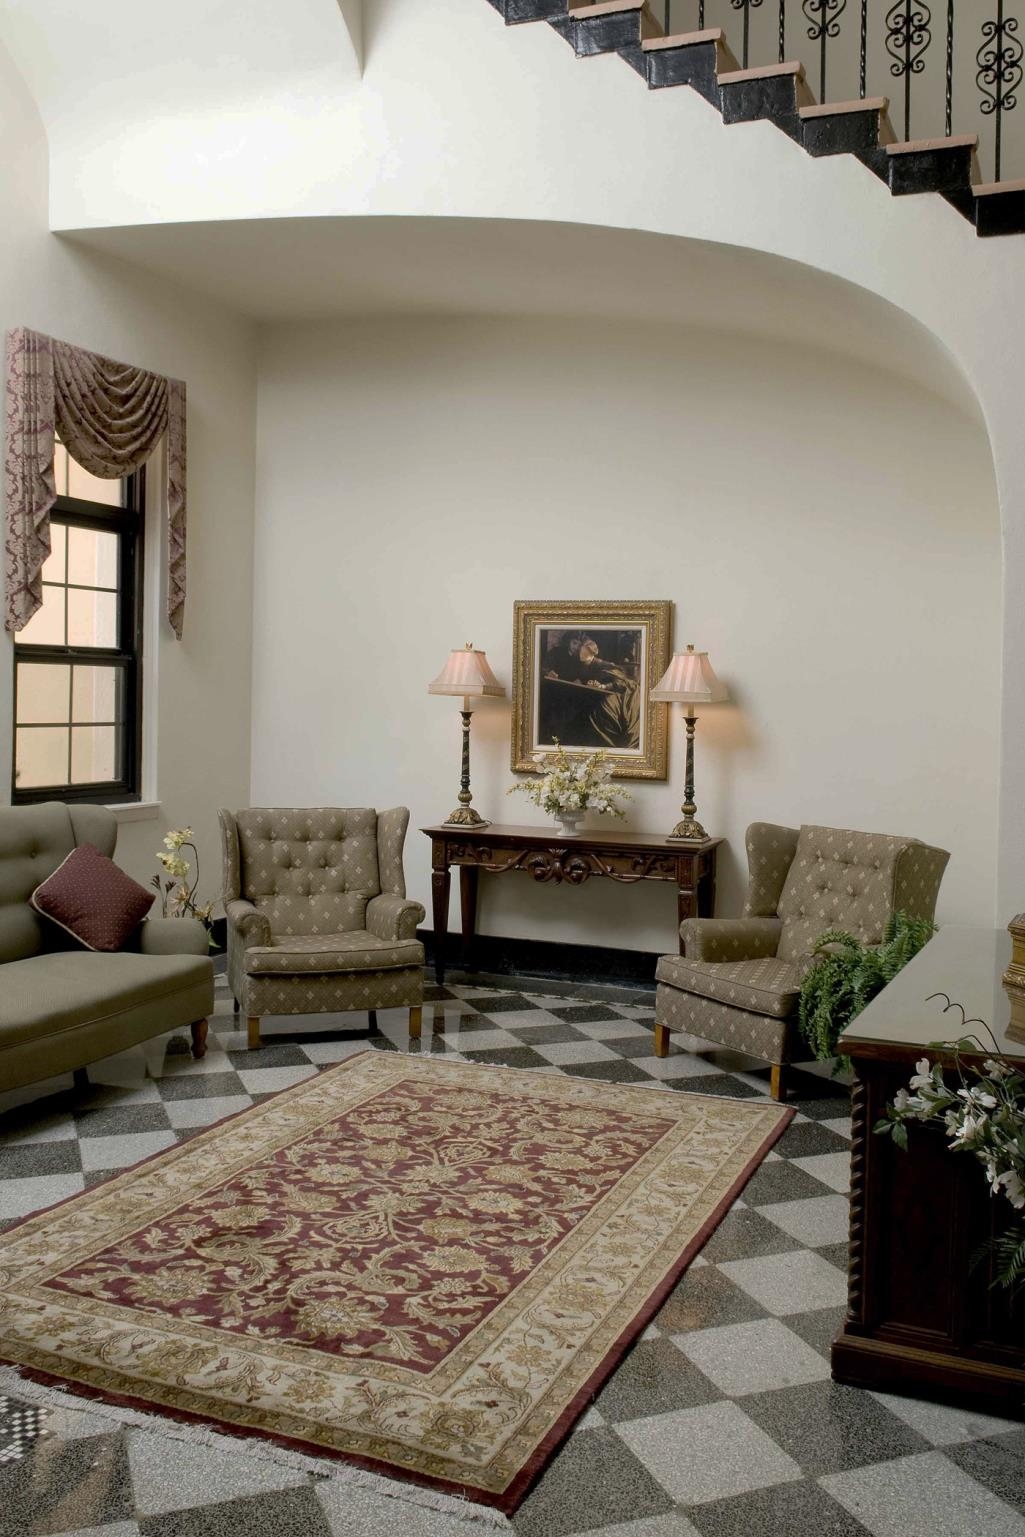 Photo of vintage-style marriage parlor at the Historic Courthouse in Sarasota, FL